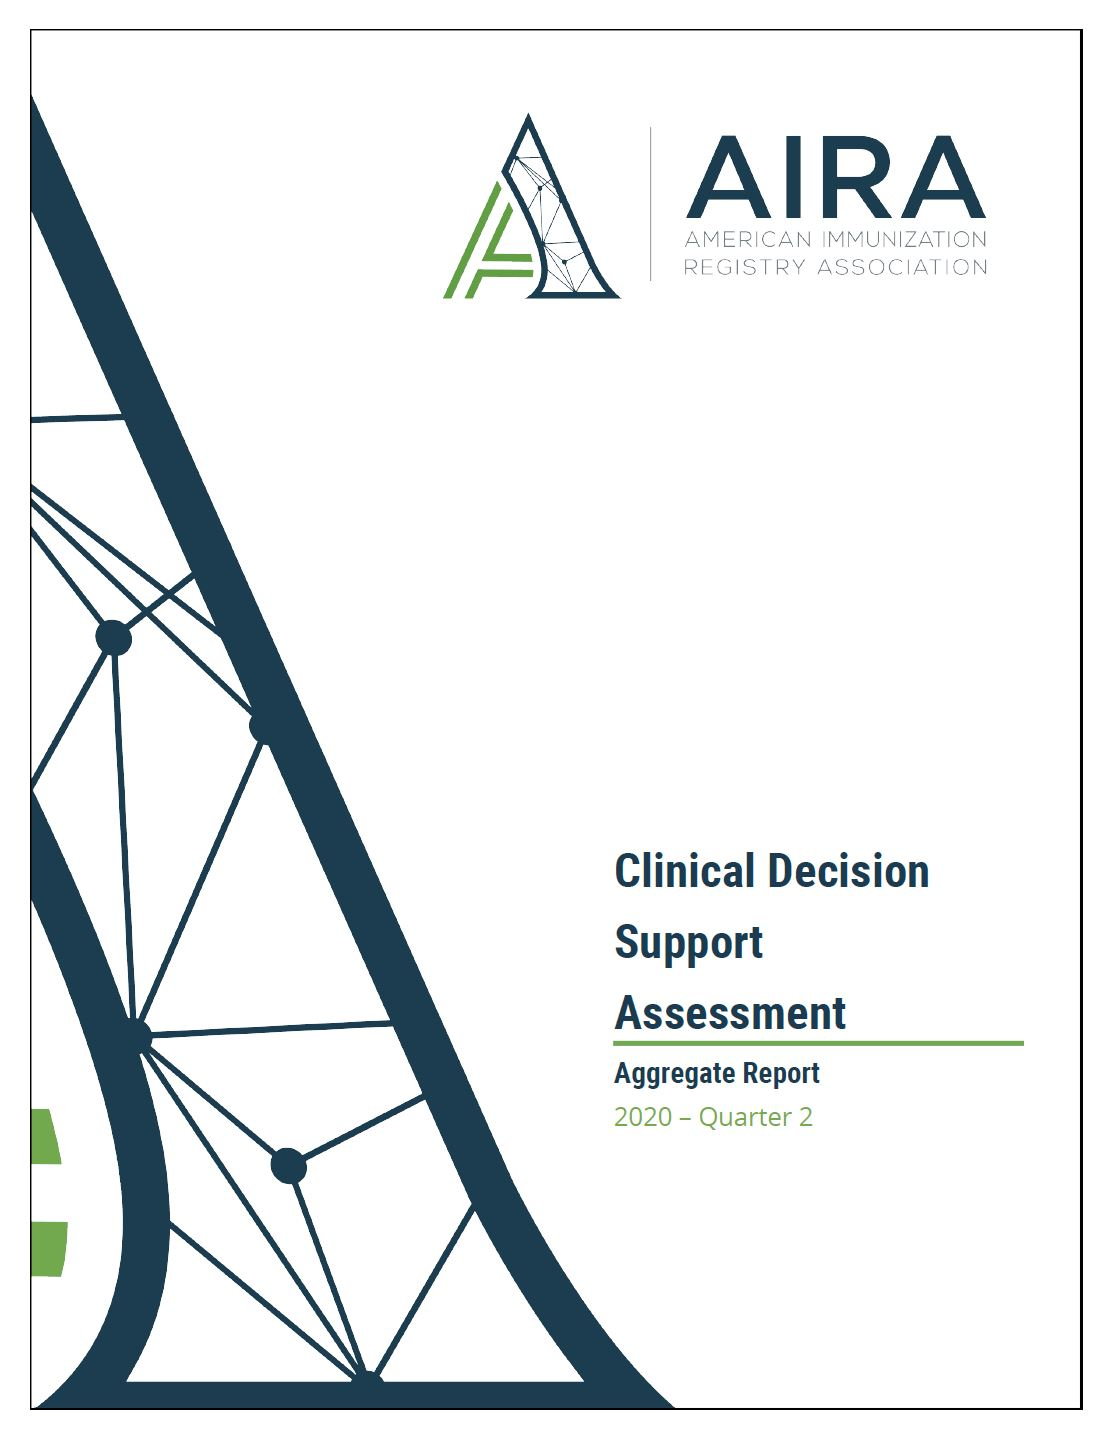 IIS Assessment Aggregate Status Report - Clinical Decision Support